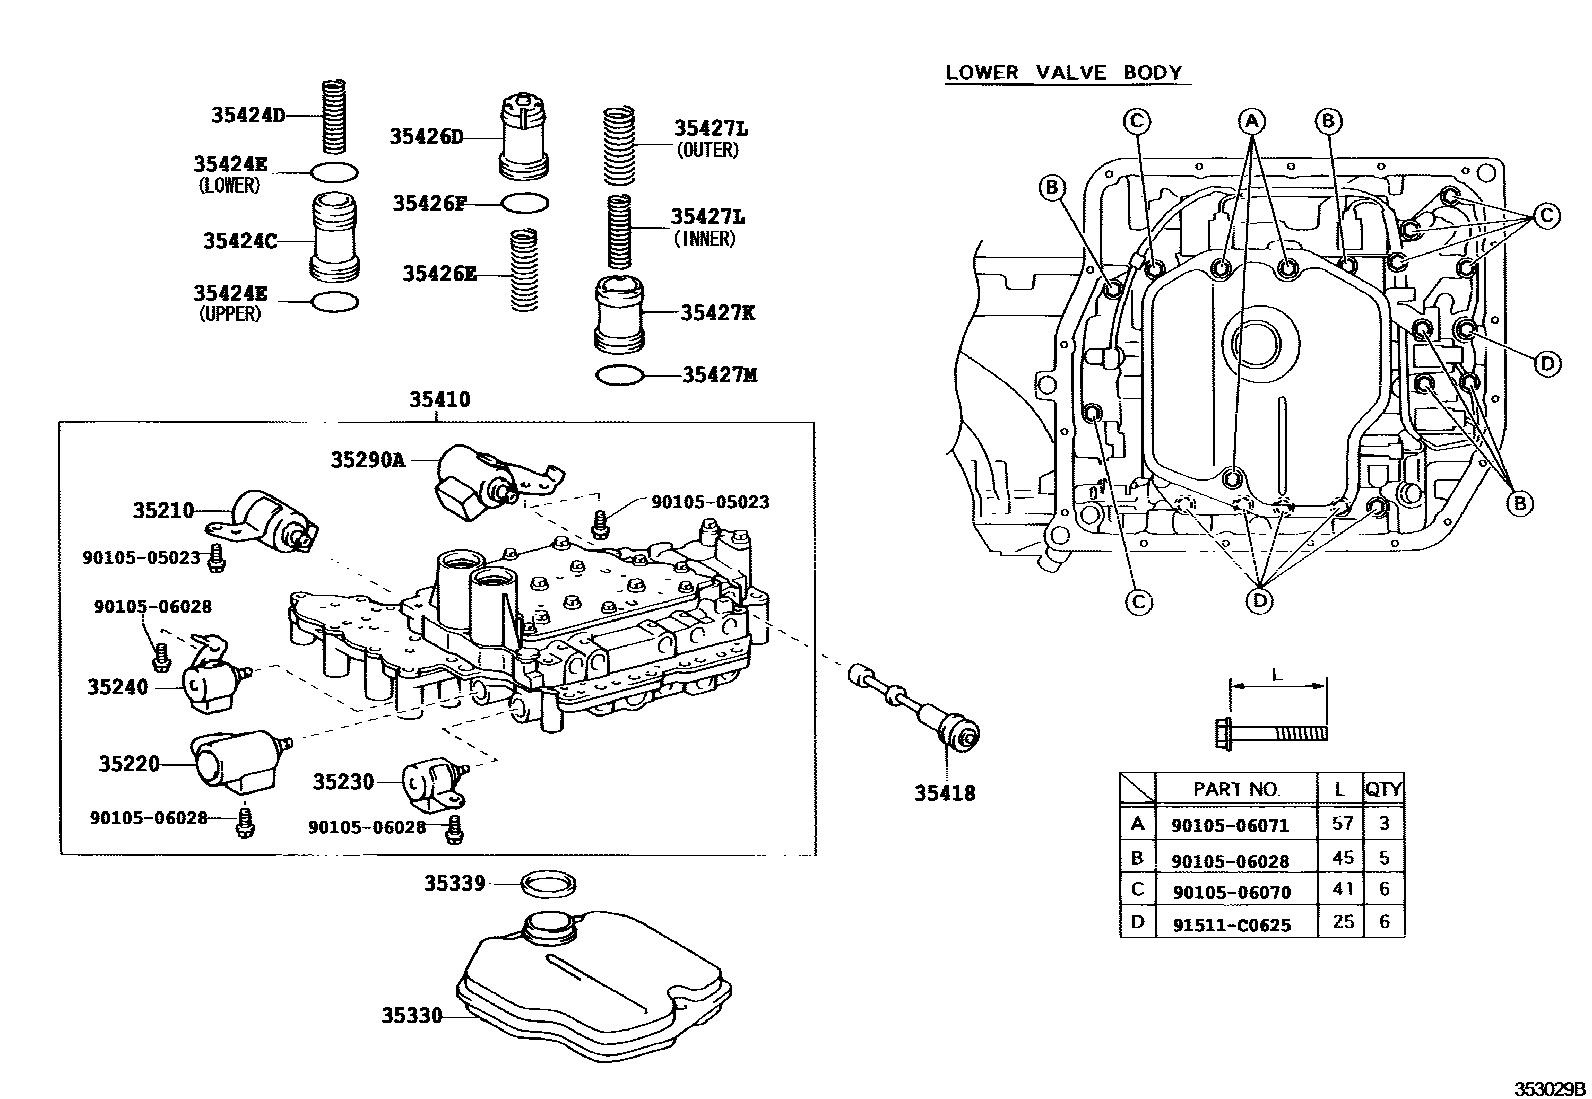 02 Lexus Gs300 Engine Diagram Electrical Wiring Diagrams 2006 Gs 300 2002 Es300 Example U2022 Rh Olkha Co